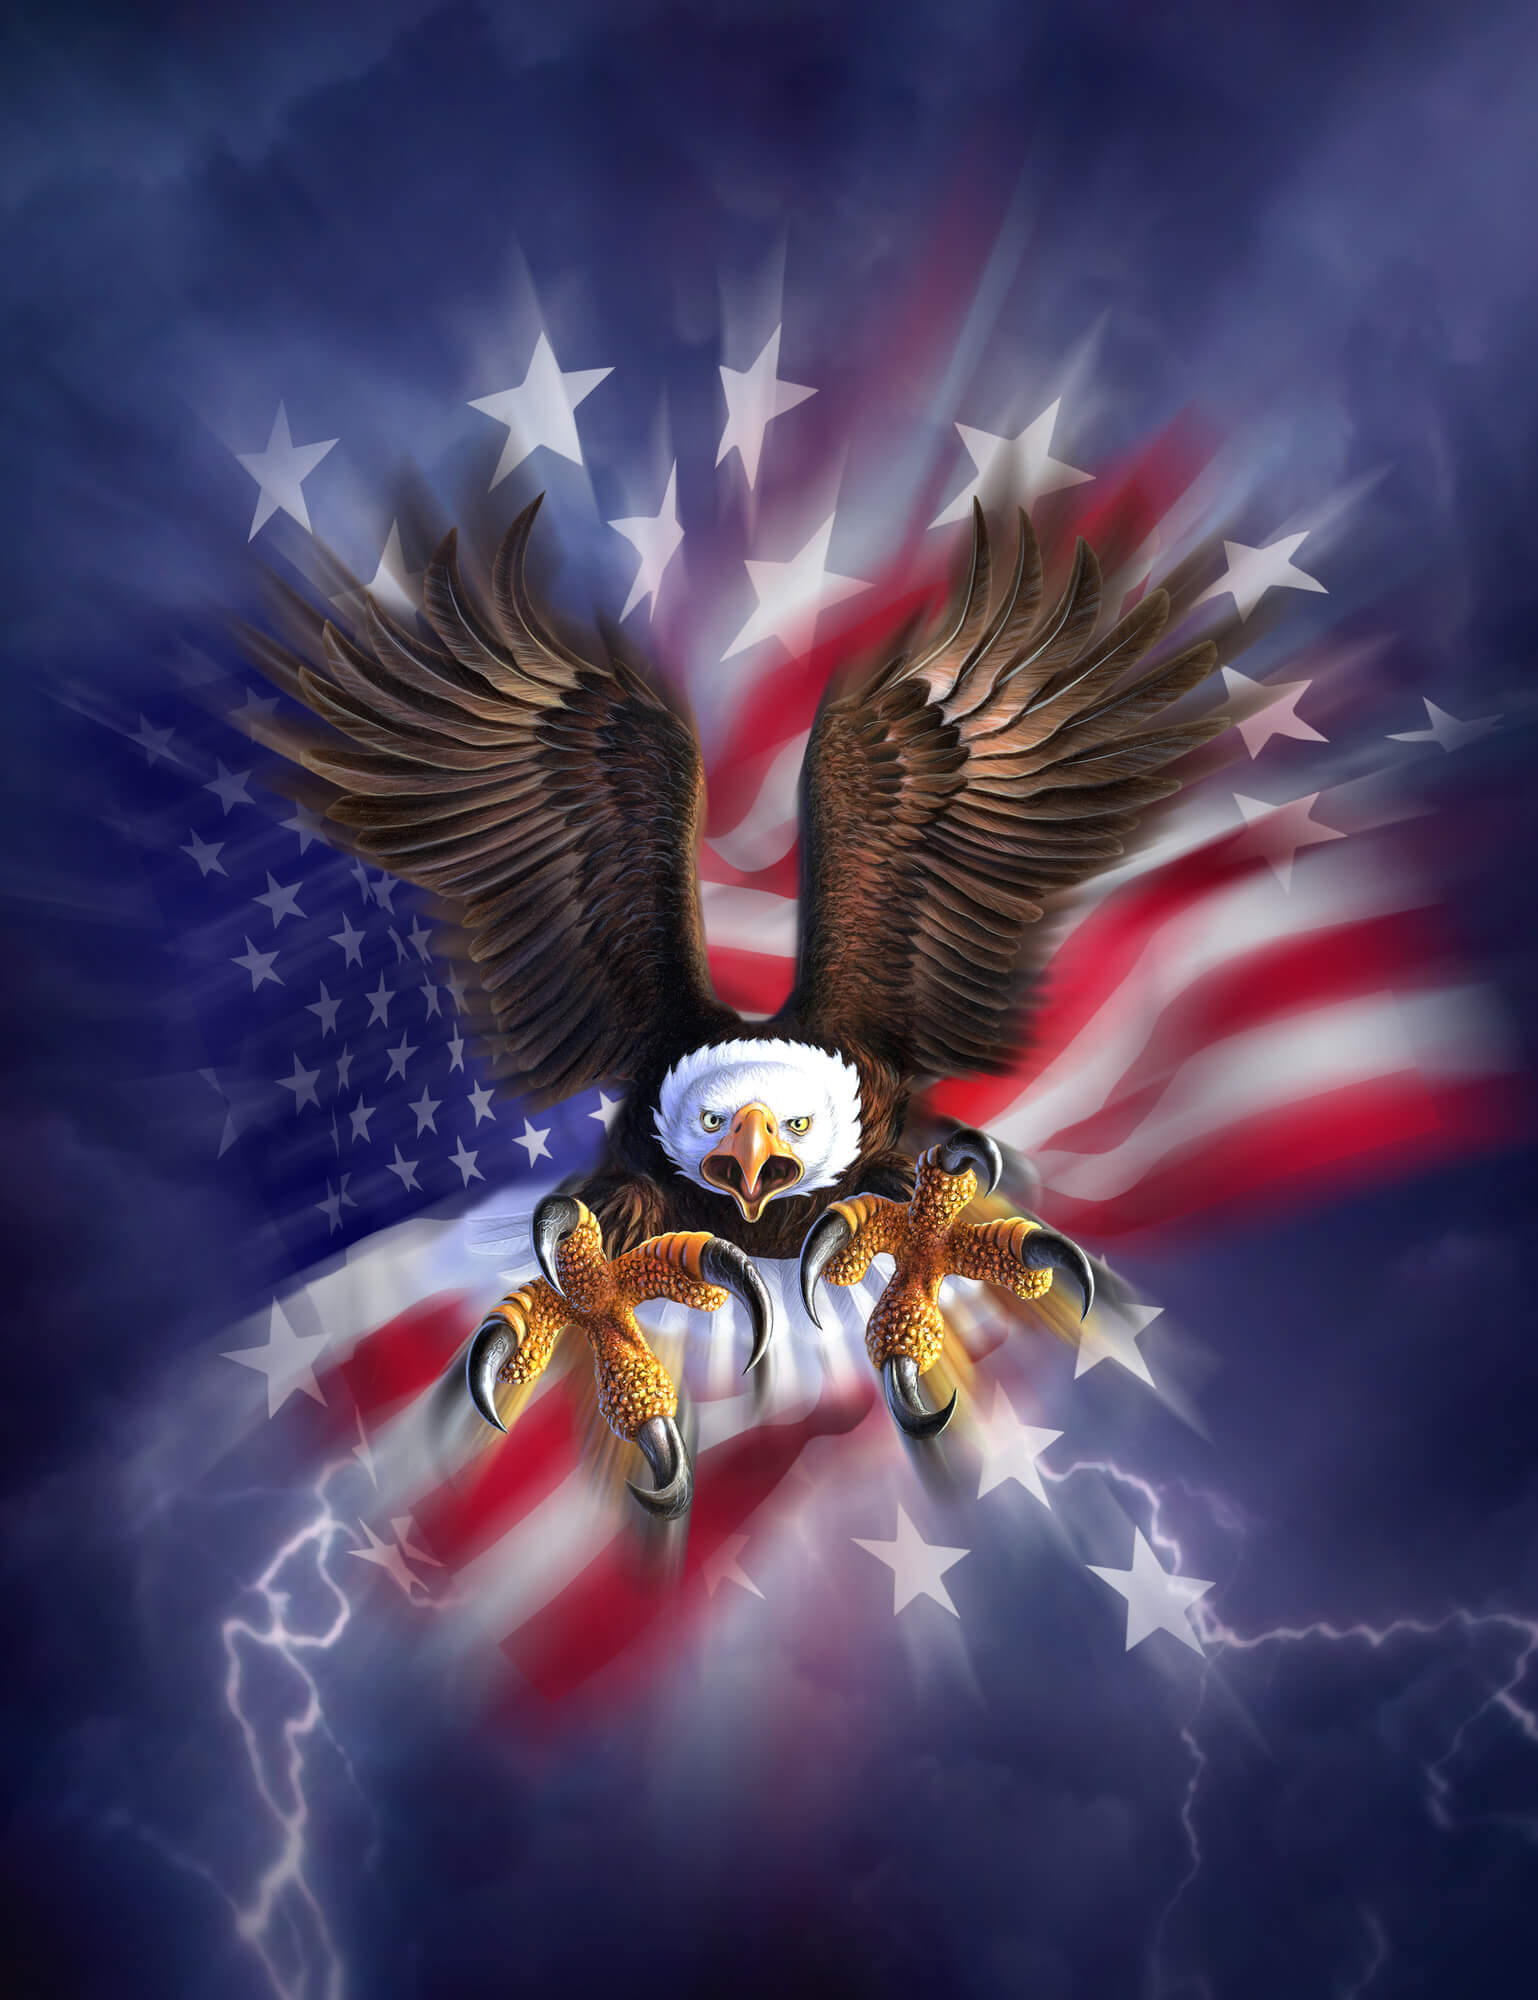 Eagle 2 wall mural eagle 2 wallpaper wallsauce for Eagle wall mural